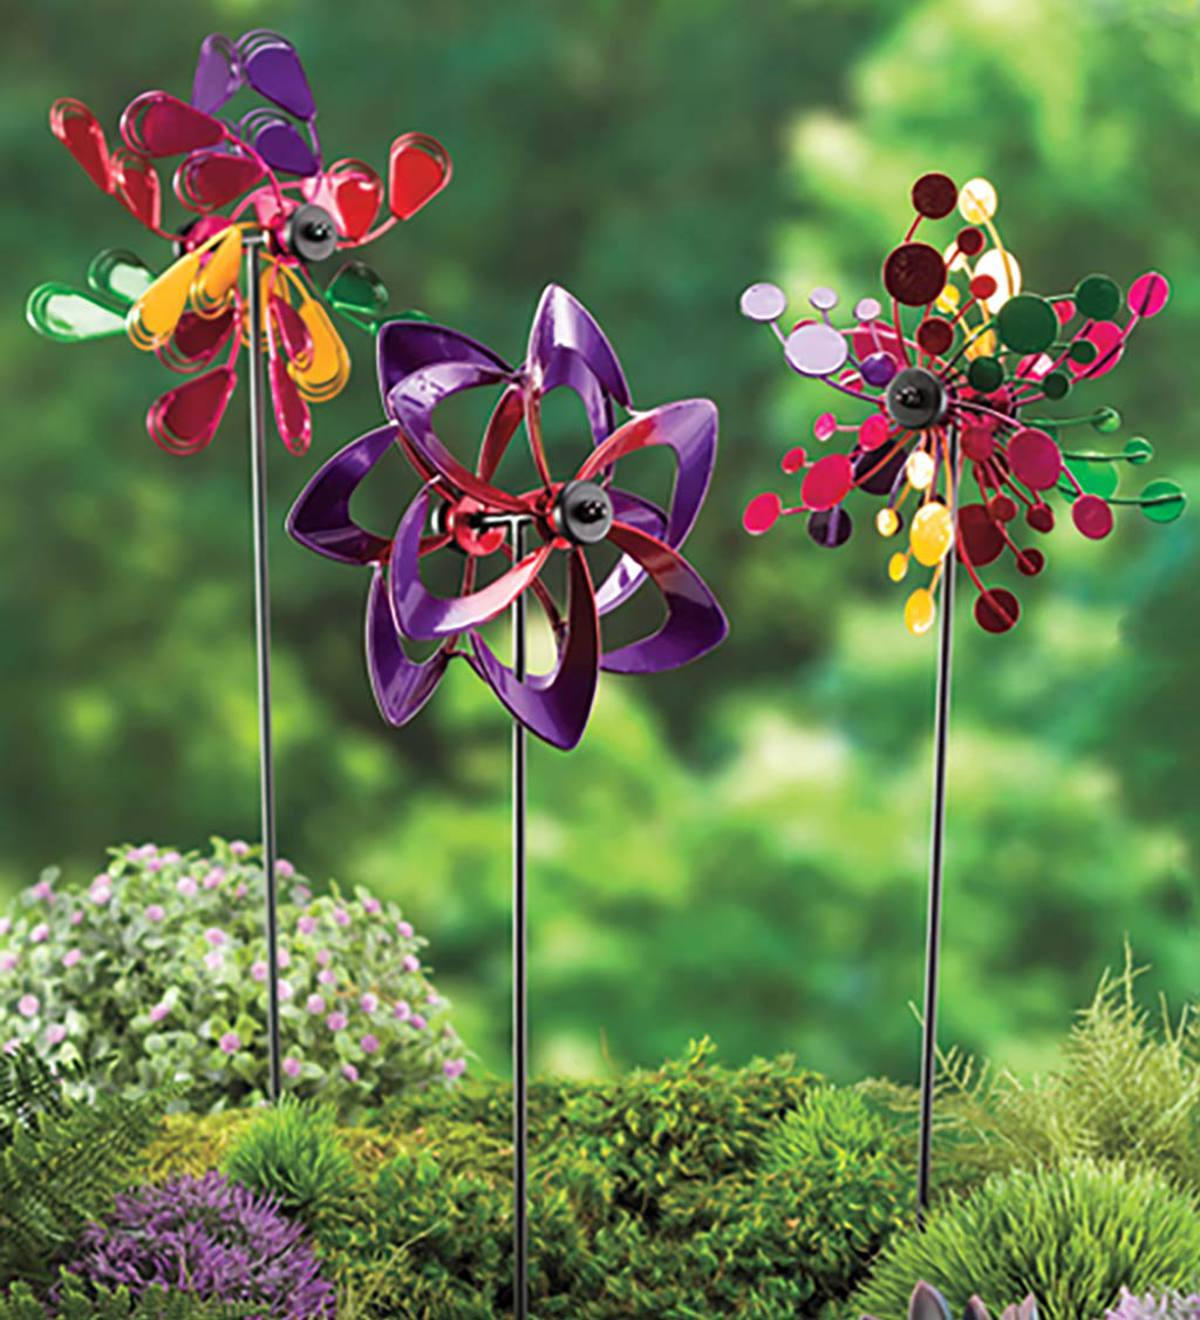 Pinwheel Mini Wind Spinners with Garden Stake, Set of 3 - Copper-Colored - Multi